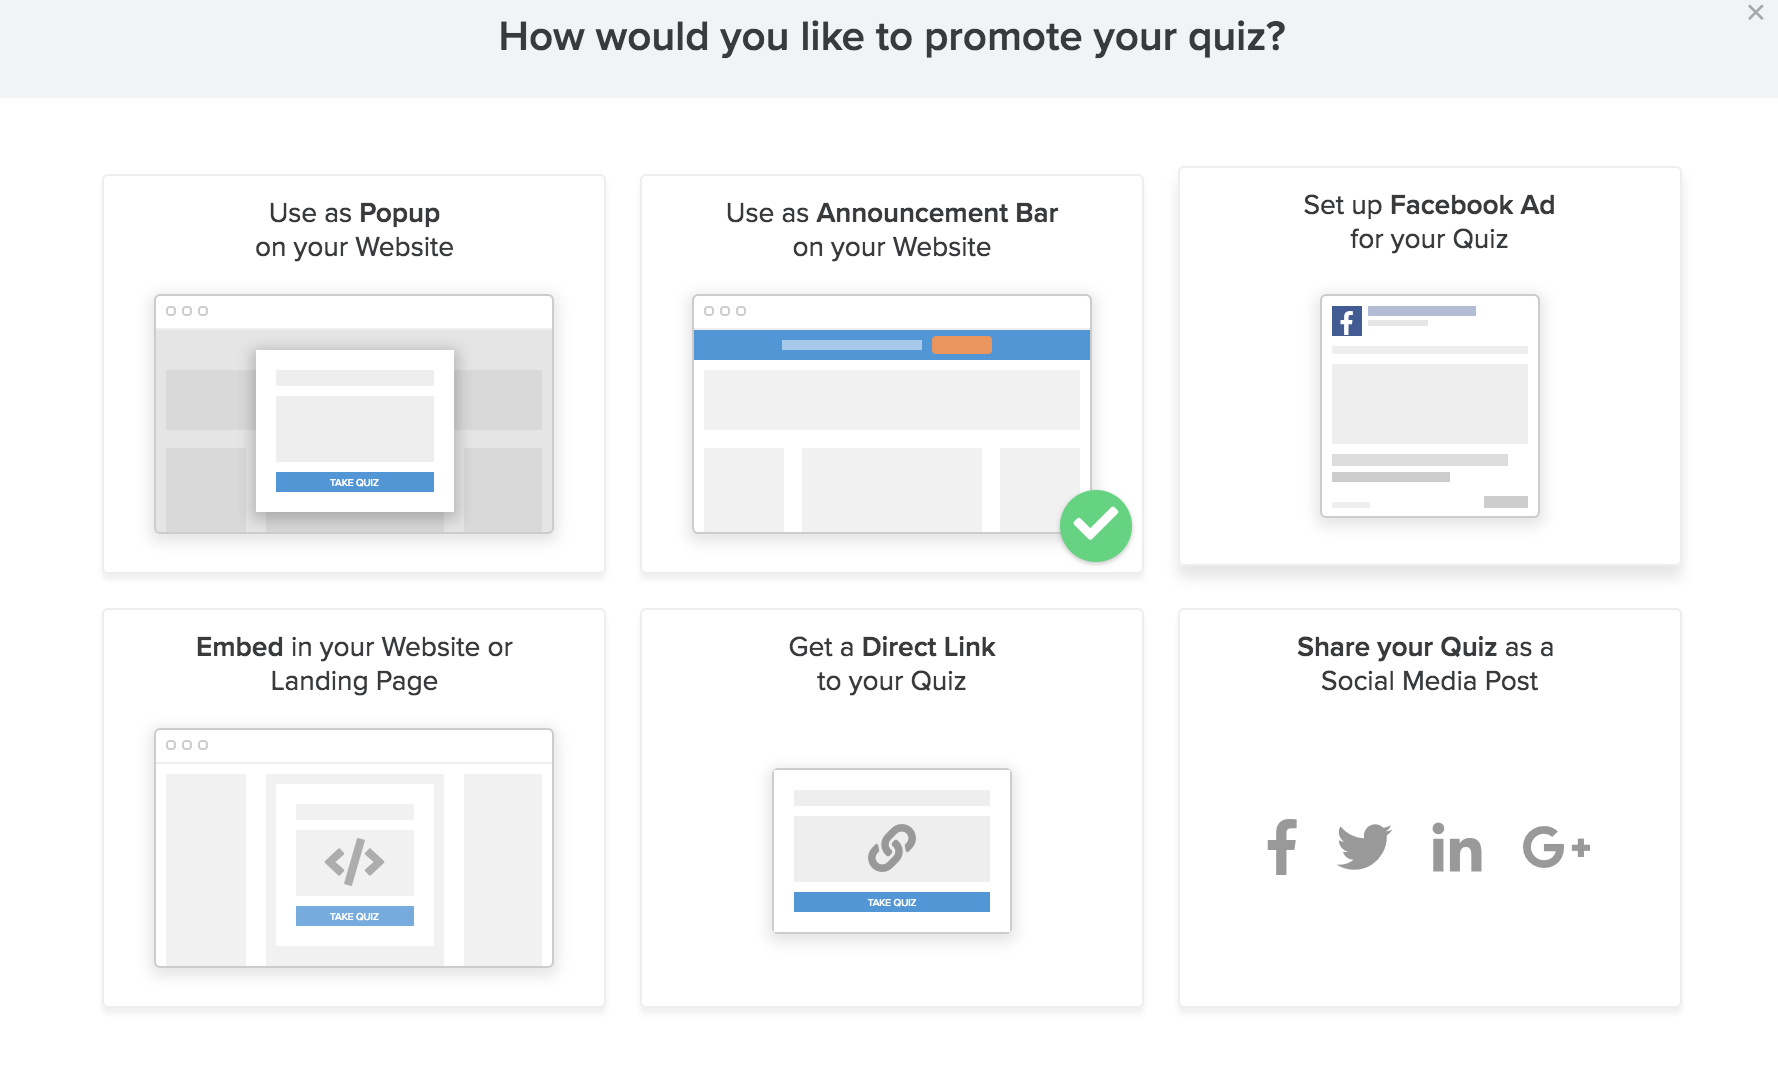 how would you like to promote your quiz